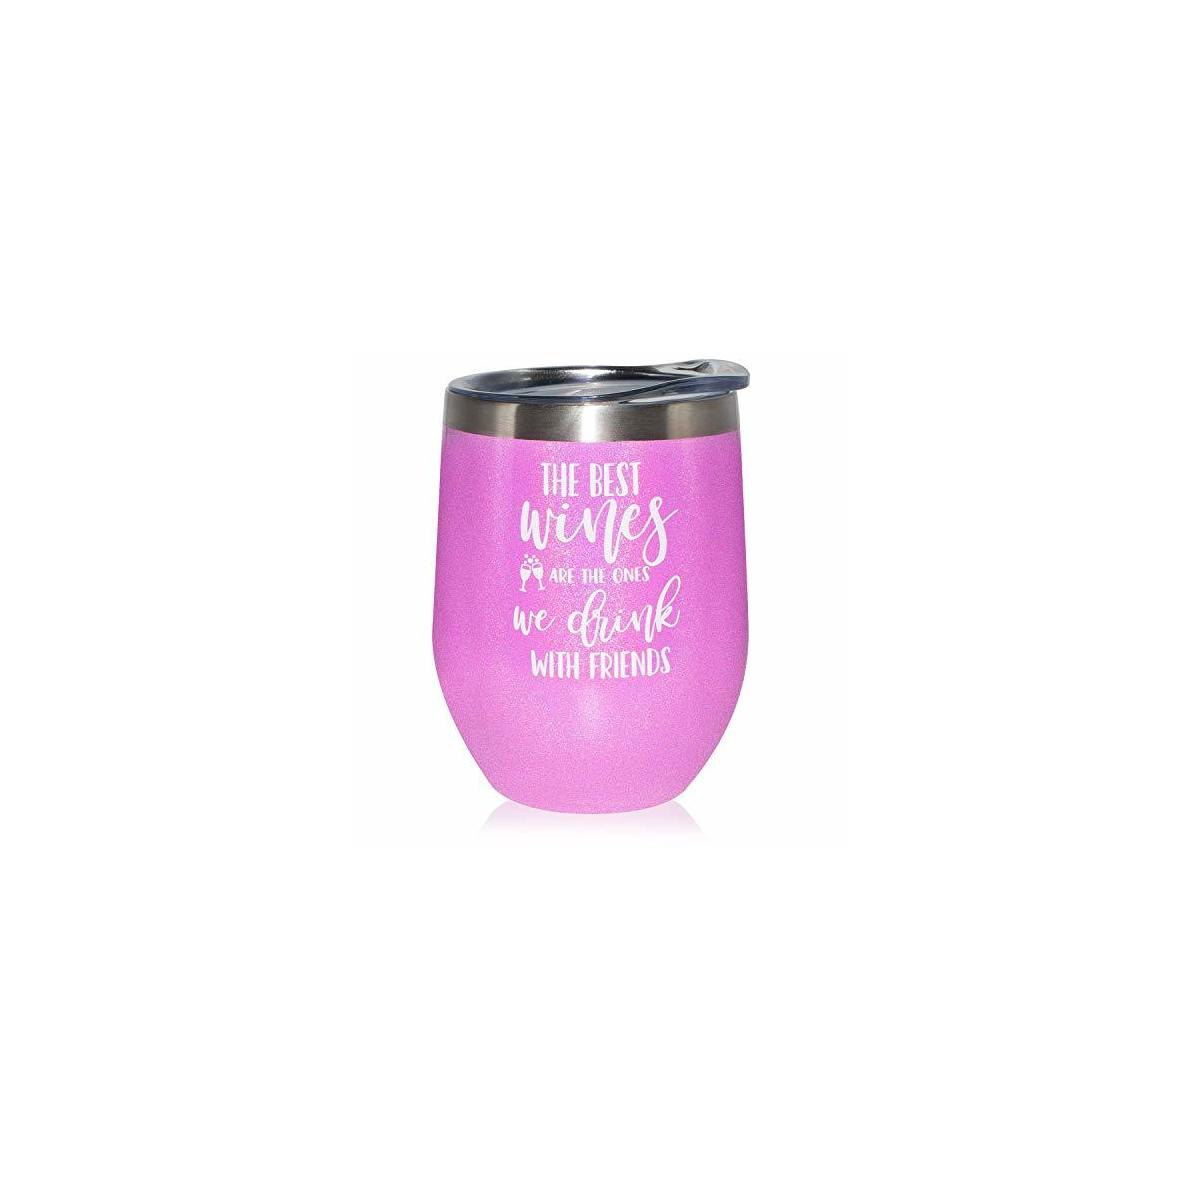 Best Friend Gifts for Women - Funny Wine Tumbler with Lid Stemless Stainless Steel Wine Cup - Valentines Day Birthday Gifts for BFF, Bestie, Soul Sister, Good Friends, Girlfriends